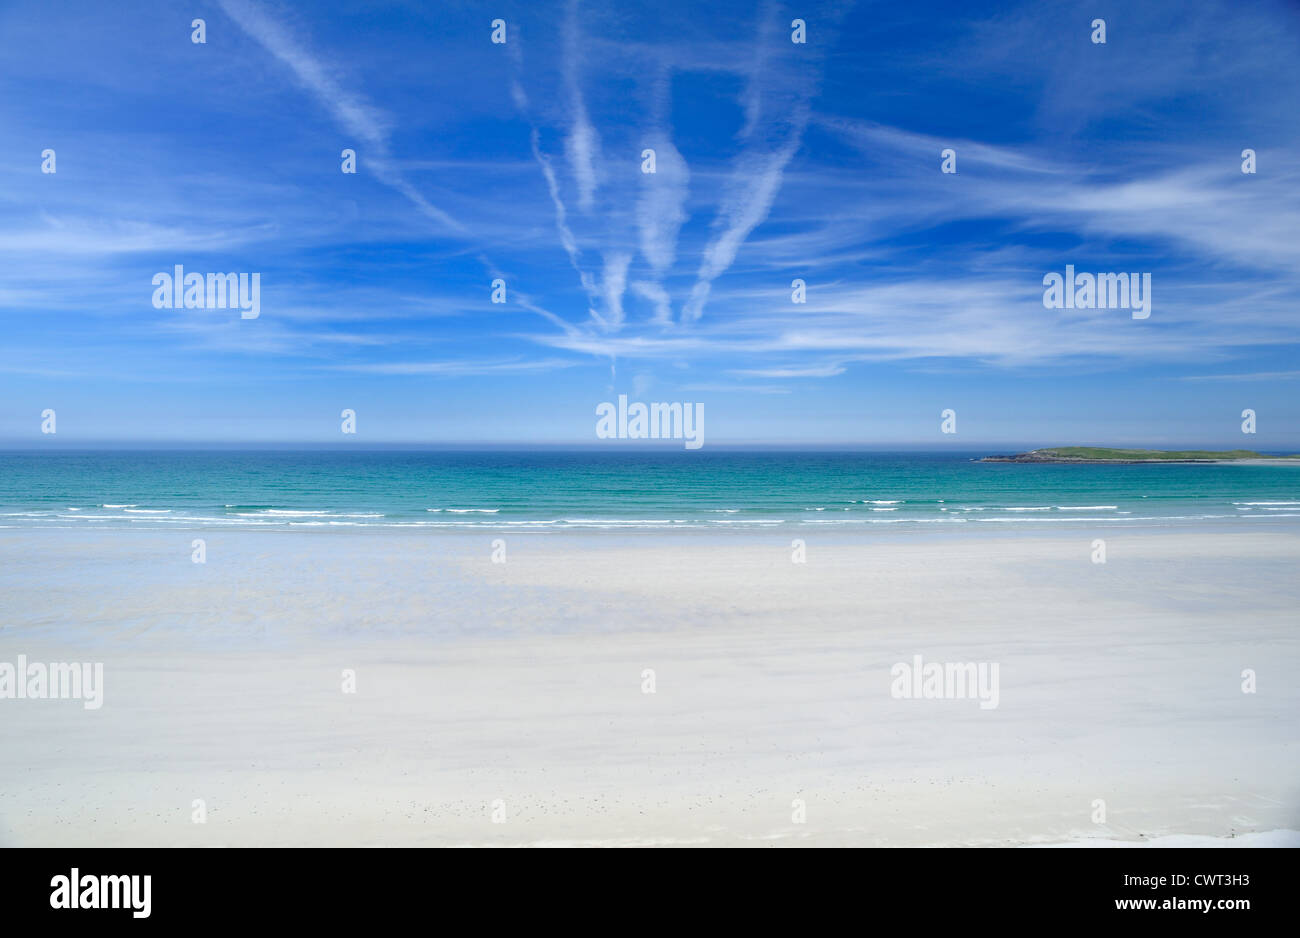 Blue sea framed in a curved white sandy beach - Stock Image